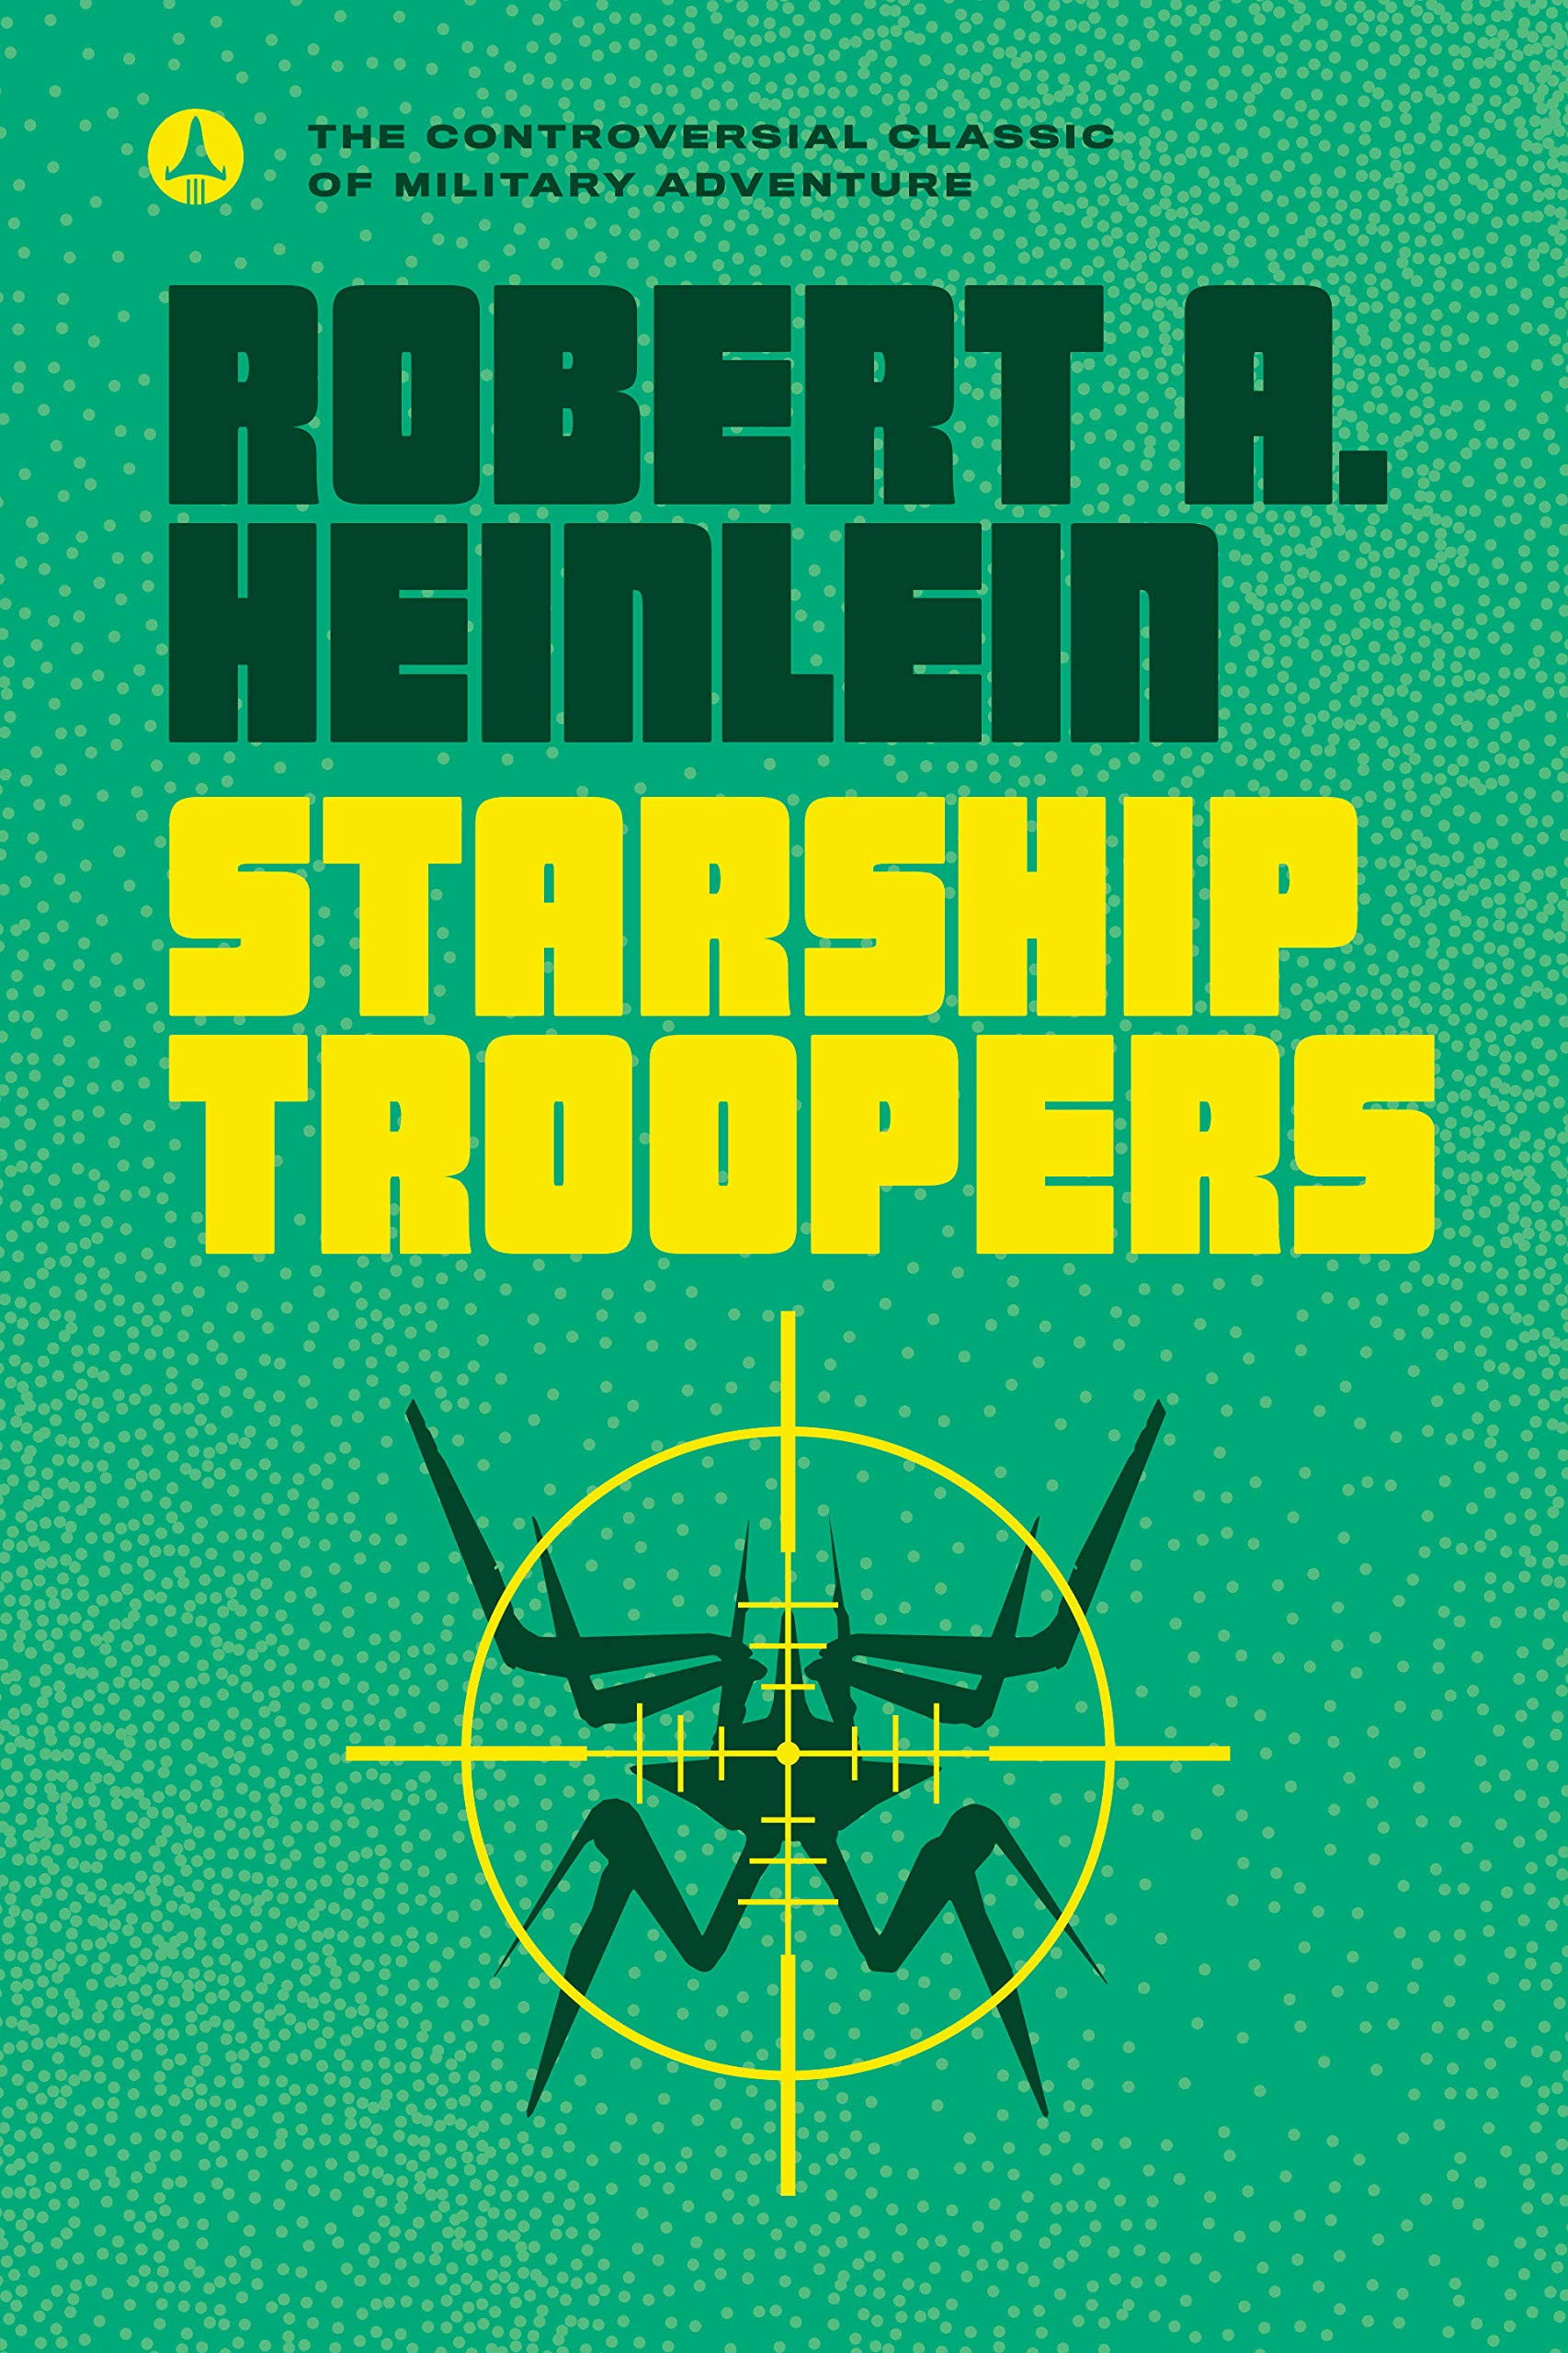 Green book with light green dots repeatedly over the cover with yellow circle targeted ship